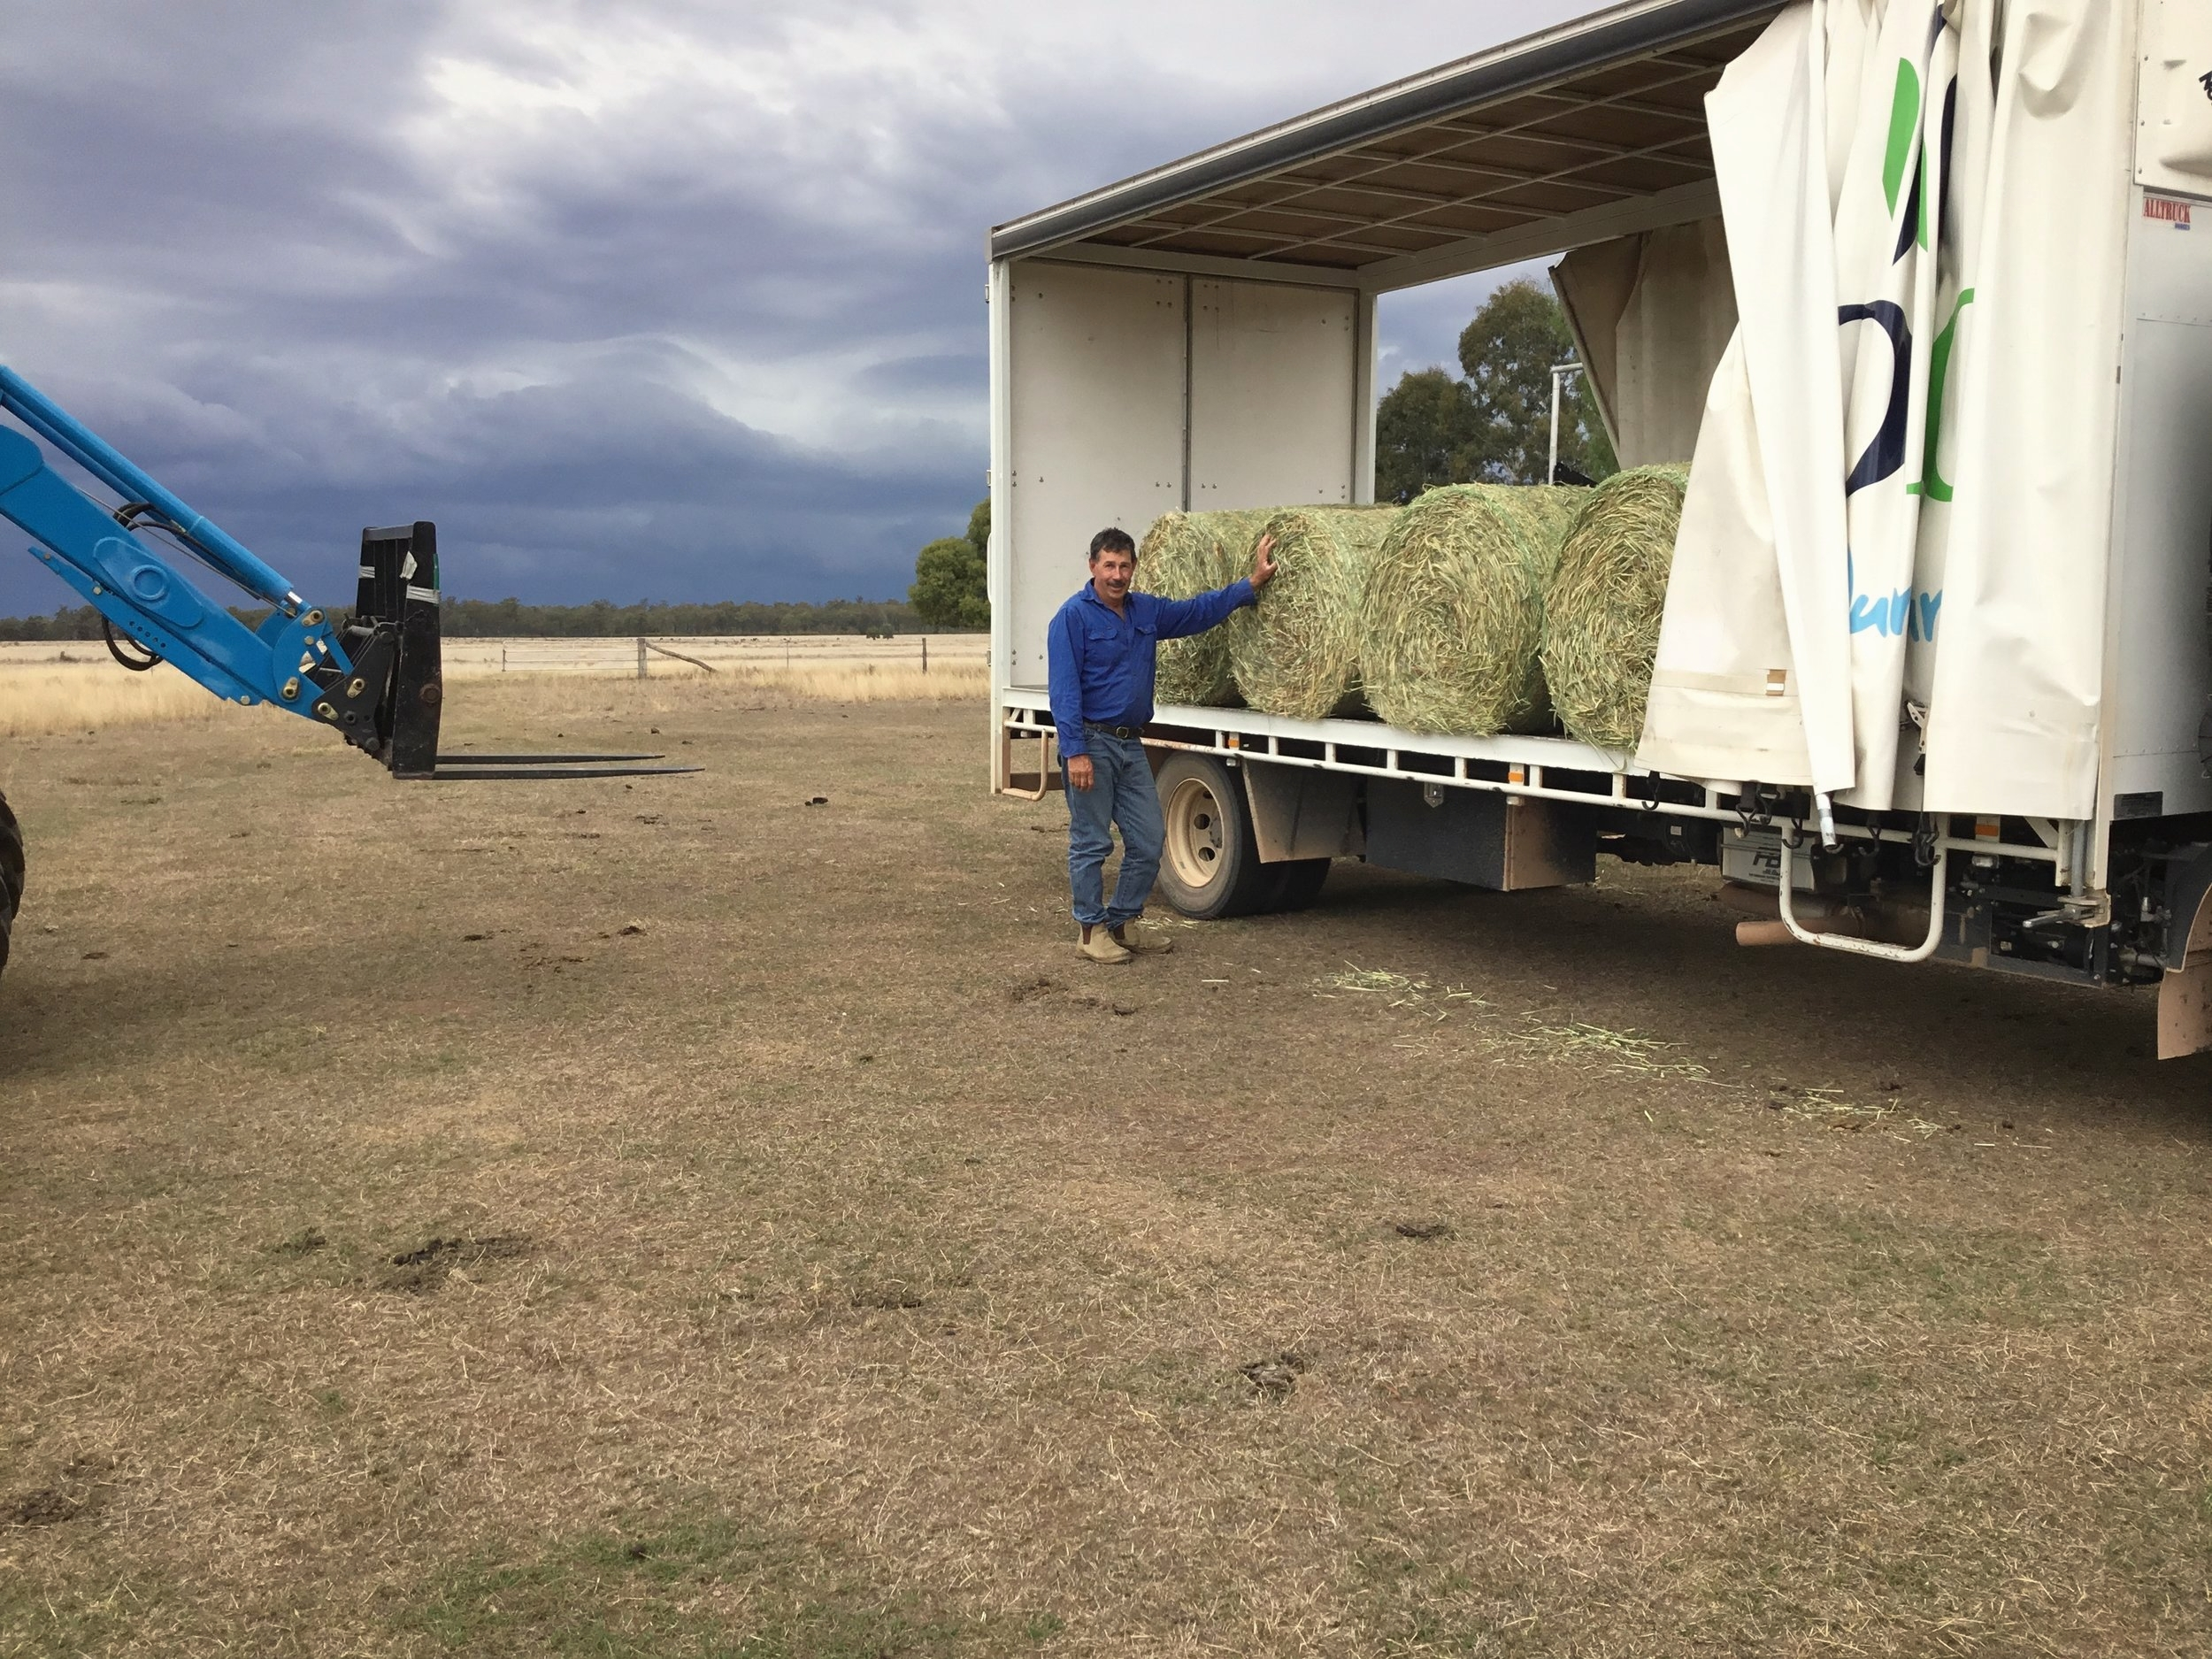 Peter Pohlmann, owner and operator of Bloomfield, stands happily with his hay while storm clouds close in.